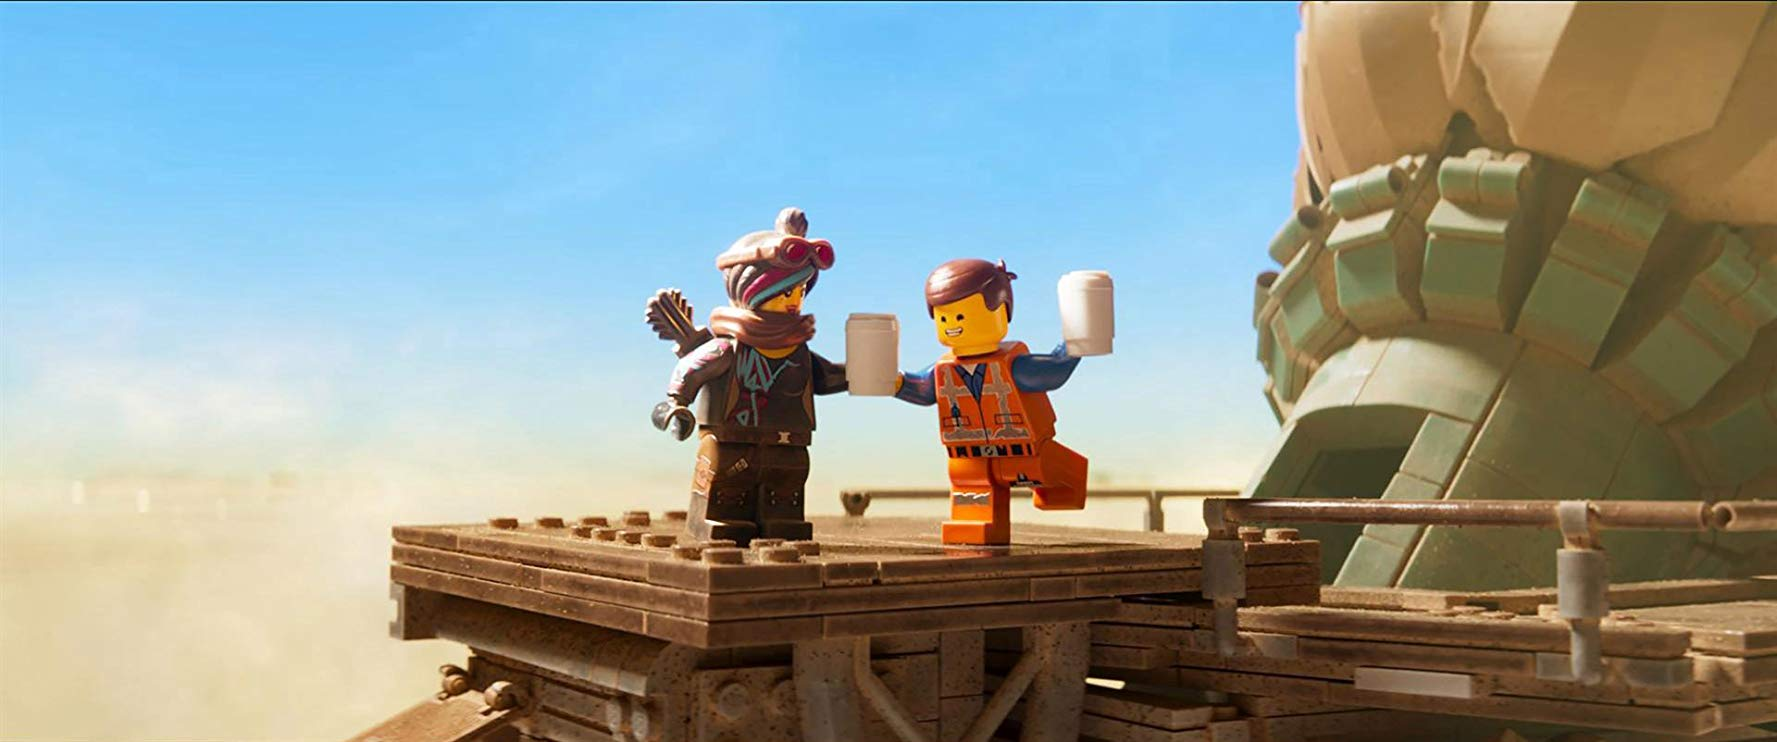 The Lego Movie 2: Una nuova avventura: Emmet e Wyldstyle in una scena